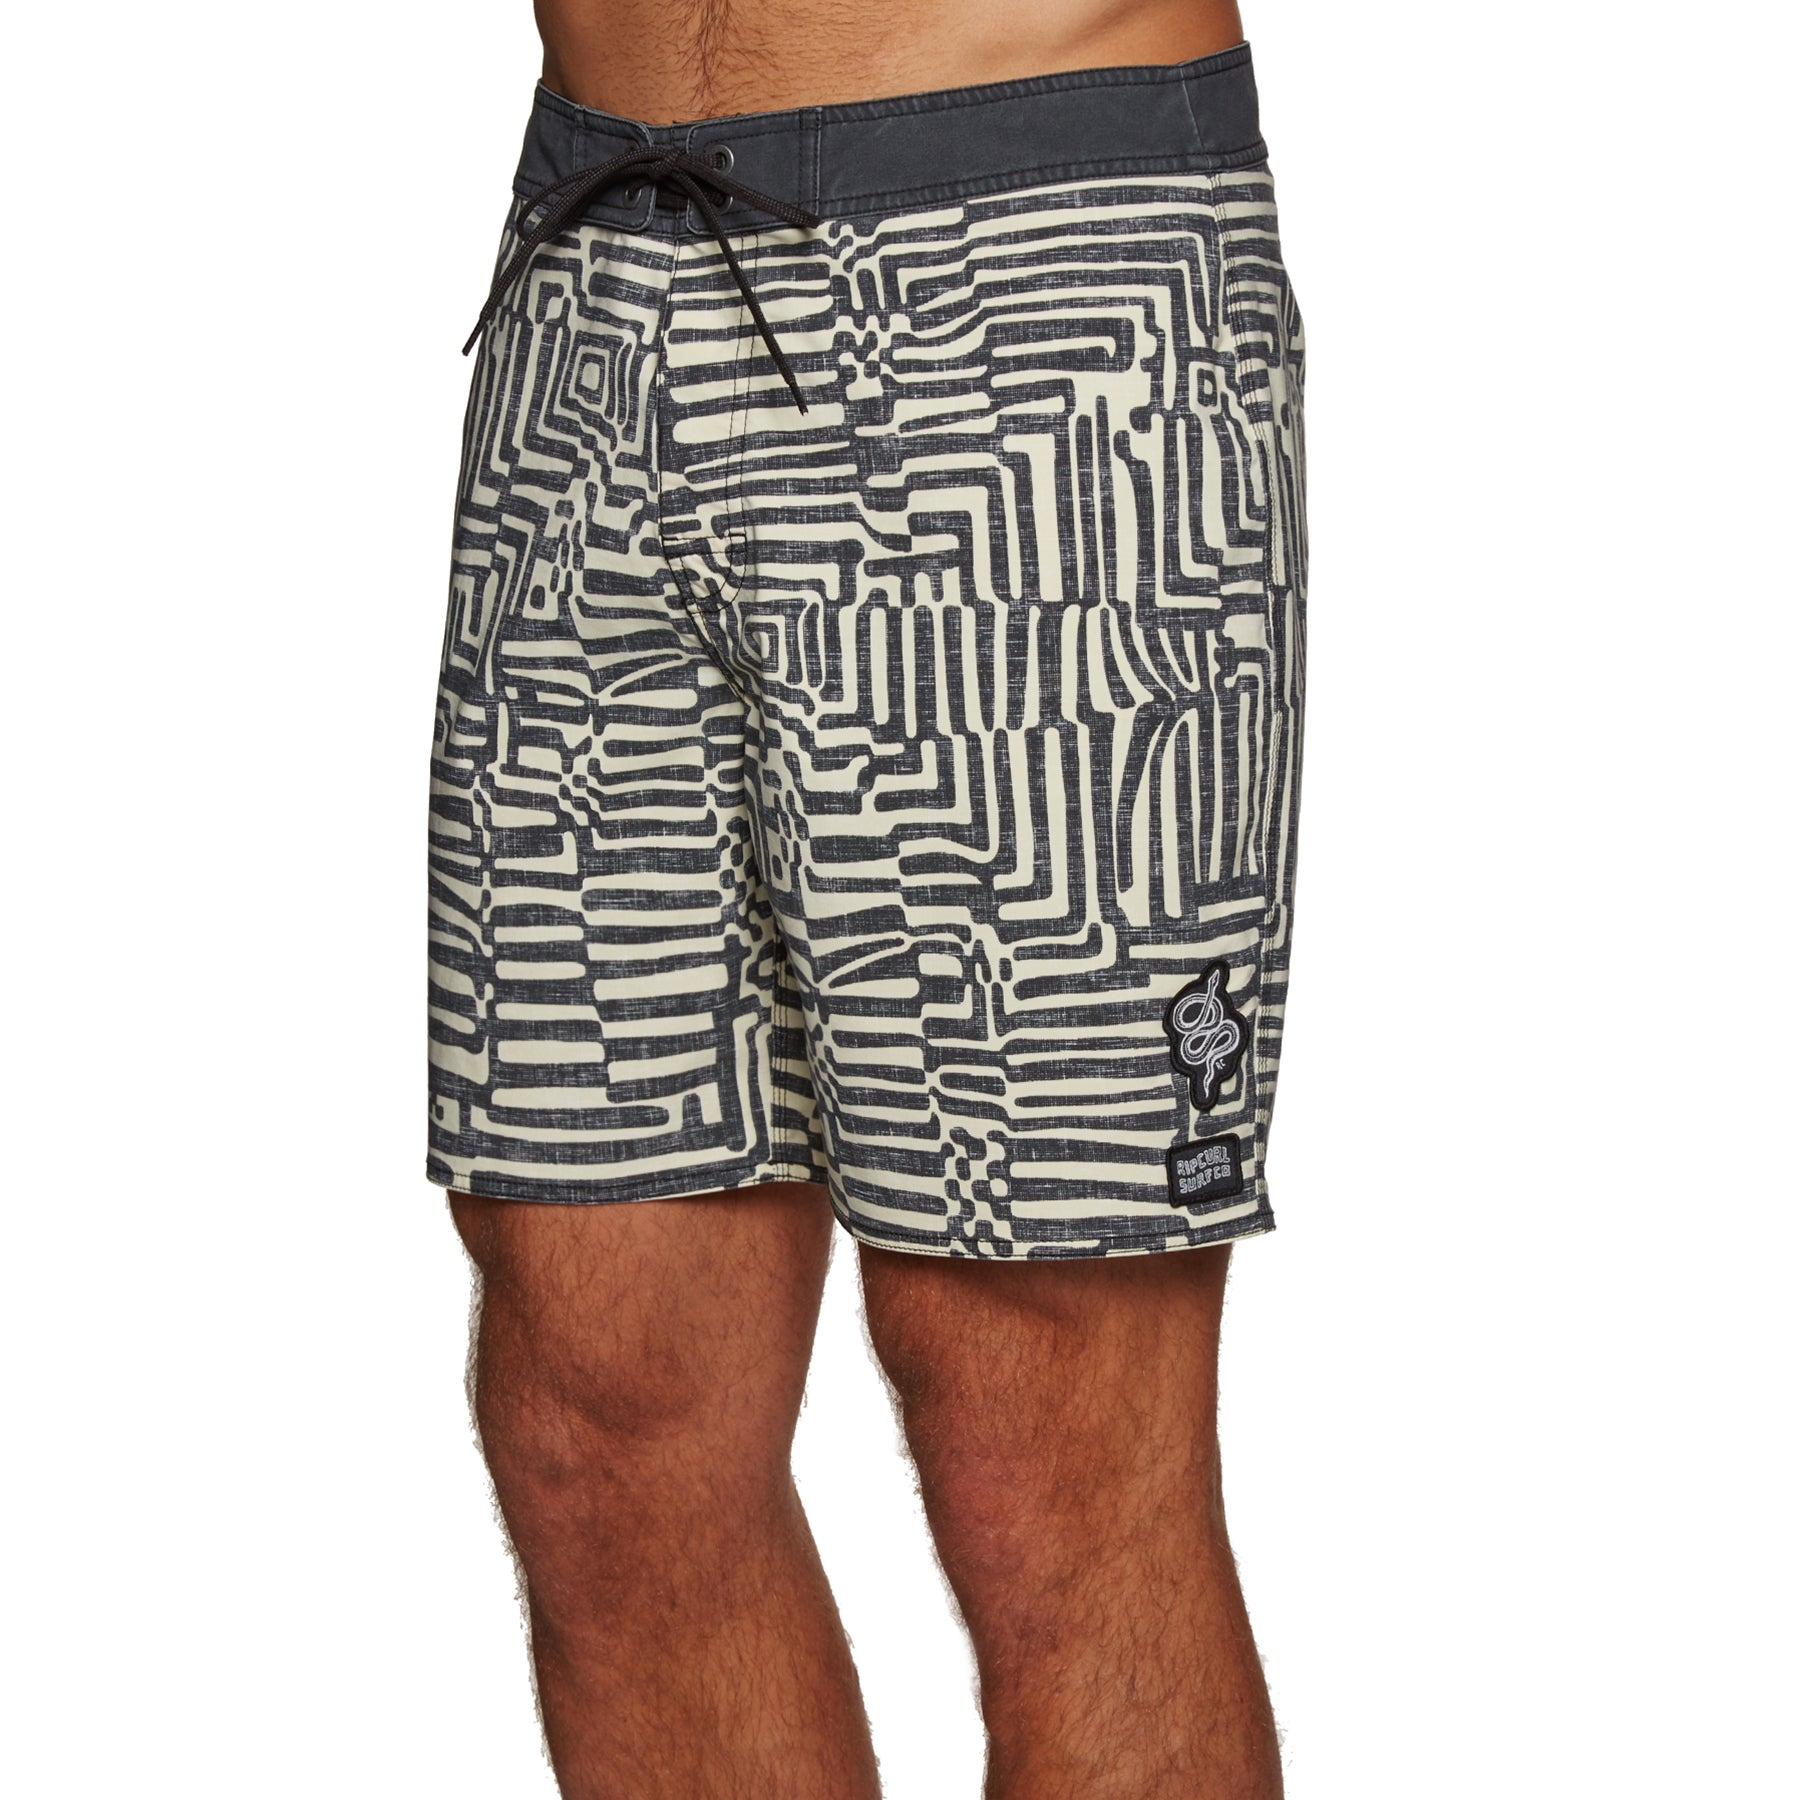 Boardshort Rip Curl Mirage Flash 18in - Bone